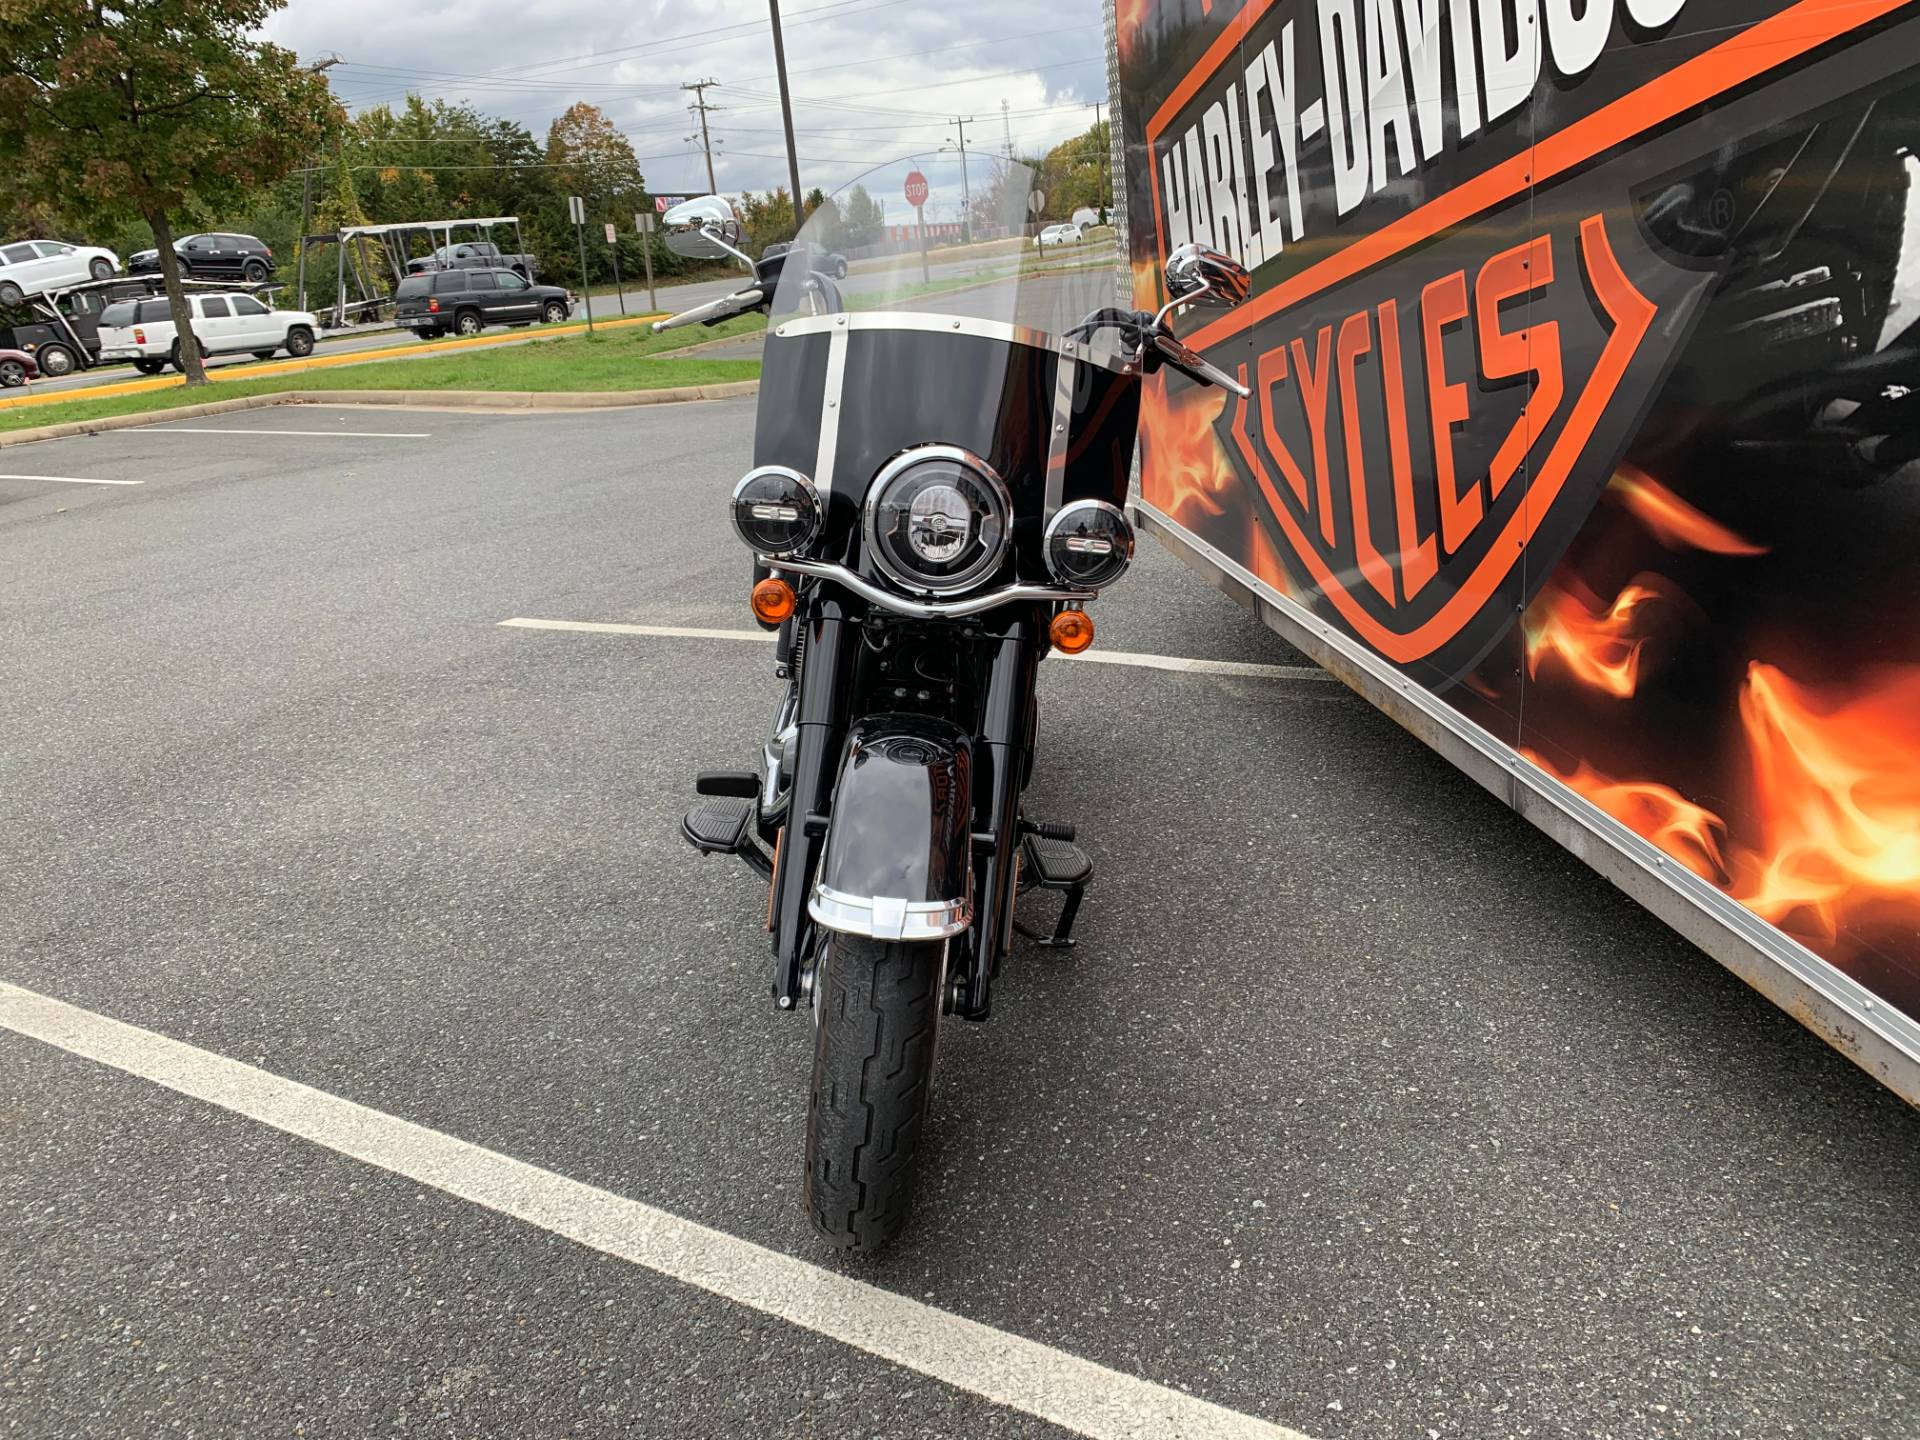 2018 Harley-Davidson Heritage Classic 114 in Fredericksburg, Virginia - Photo 3